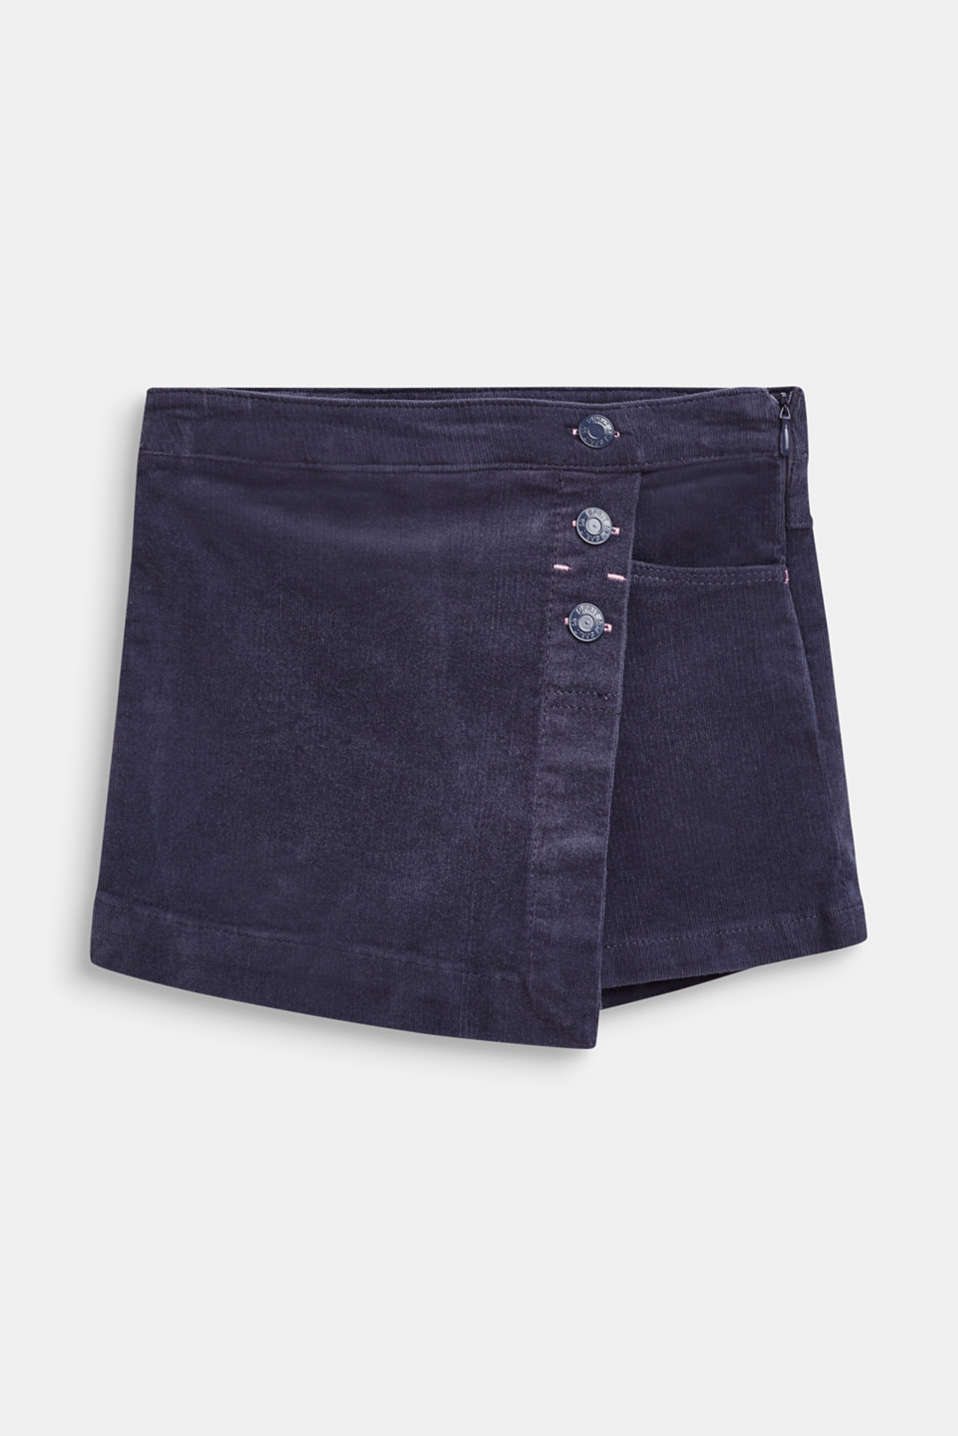 Esprit - Cord-Shorts mit Wickel-Optik